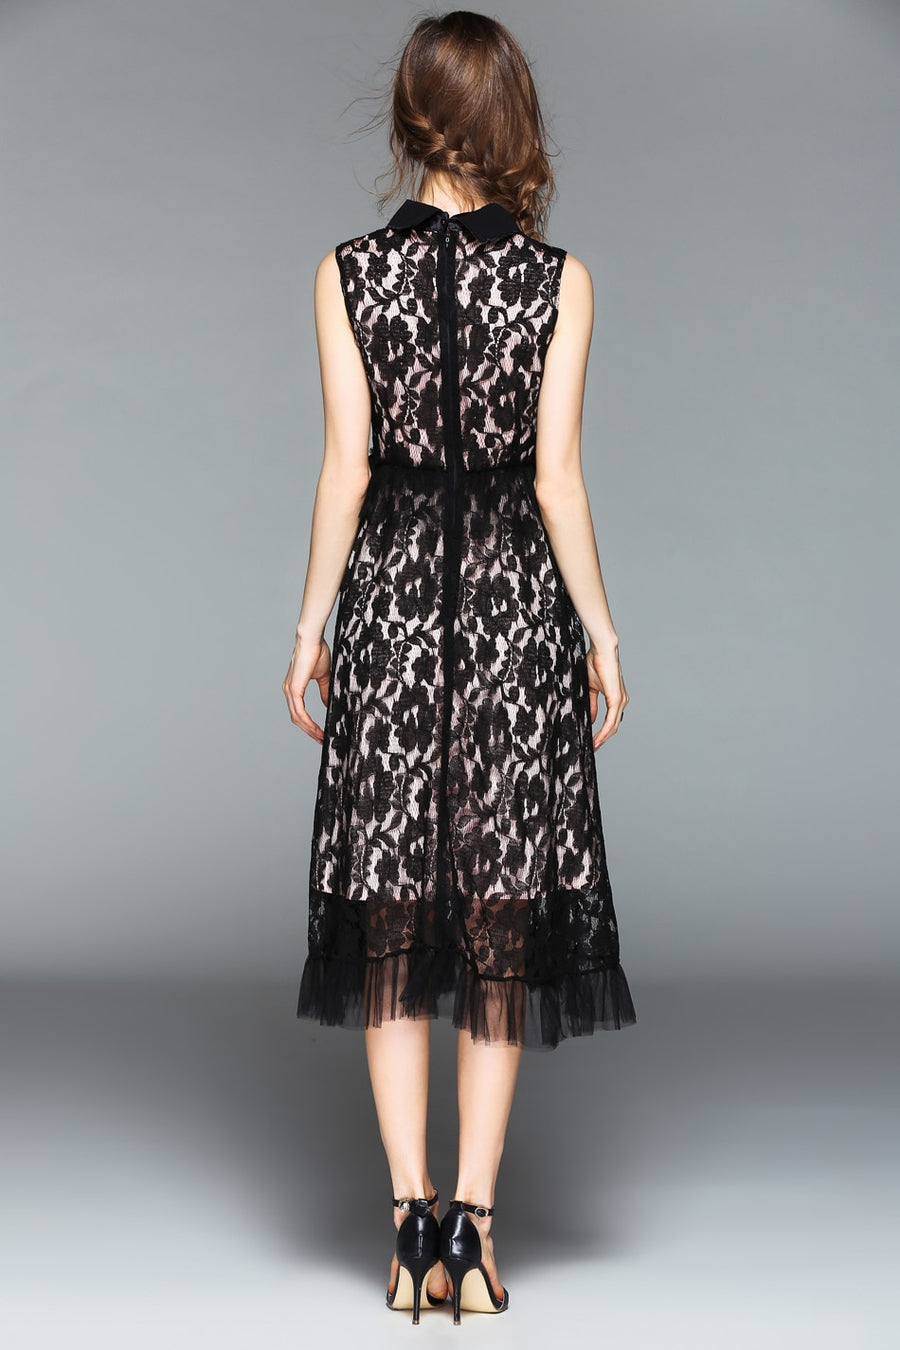 Black Sleeveless Lace Floral Hollow Out Dress with Peral Front Decoration